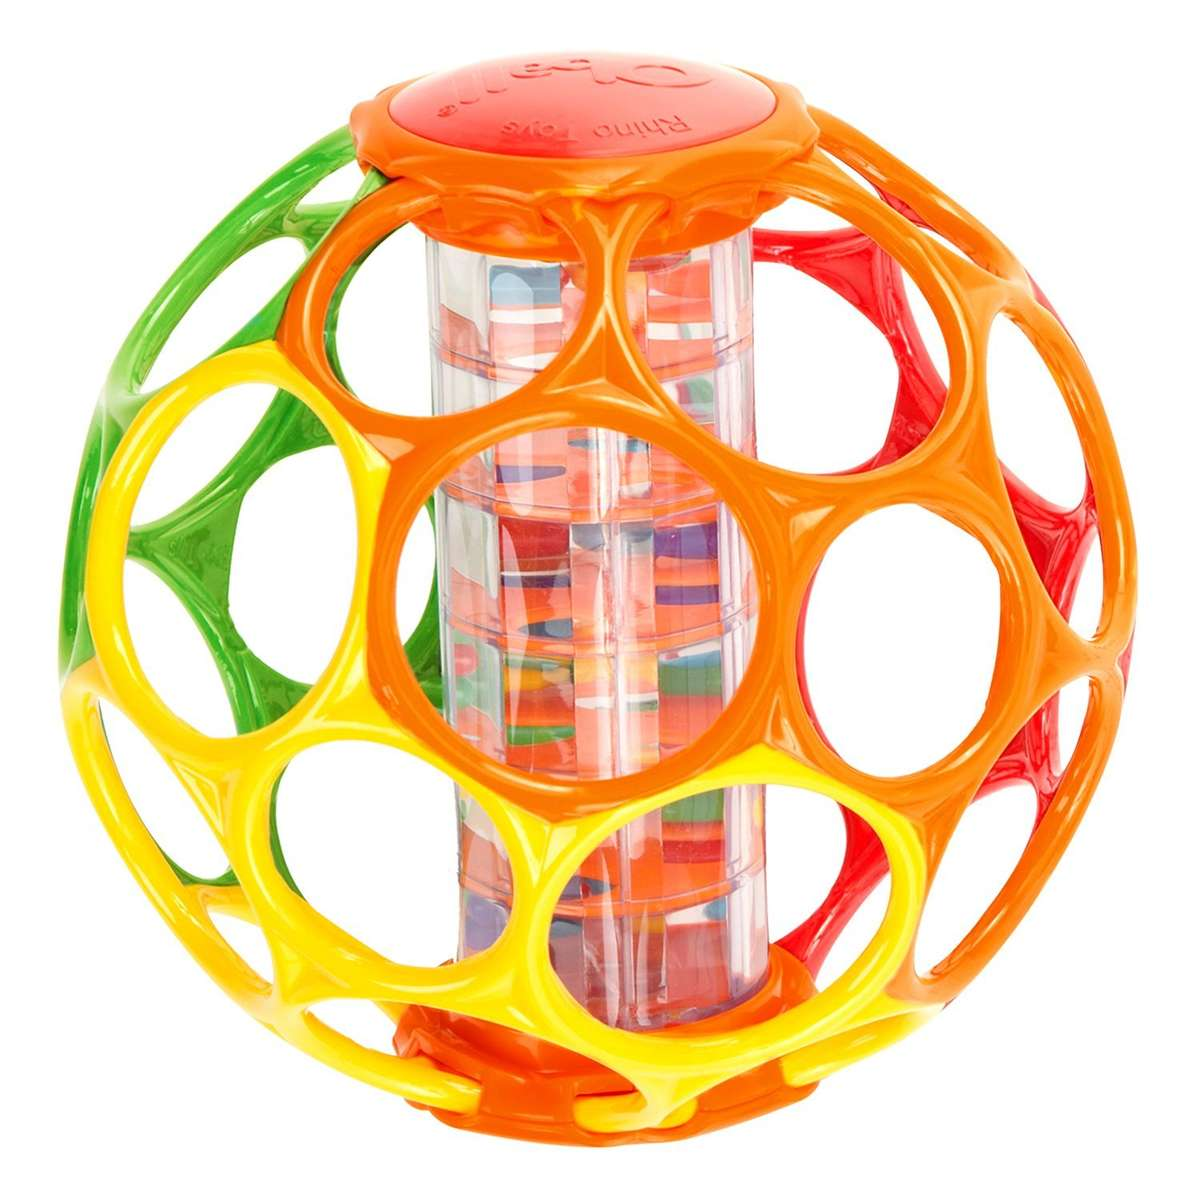 Rhino Toys 6-Inch Oball With Rainstick Rattle - Orange/Red/Green